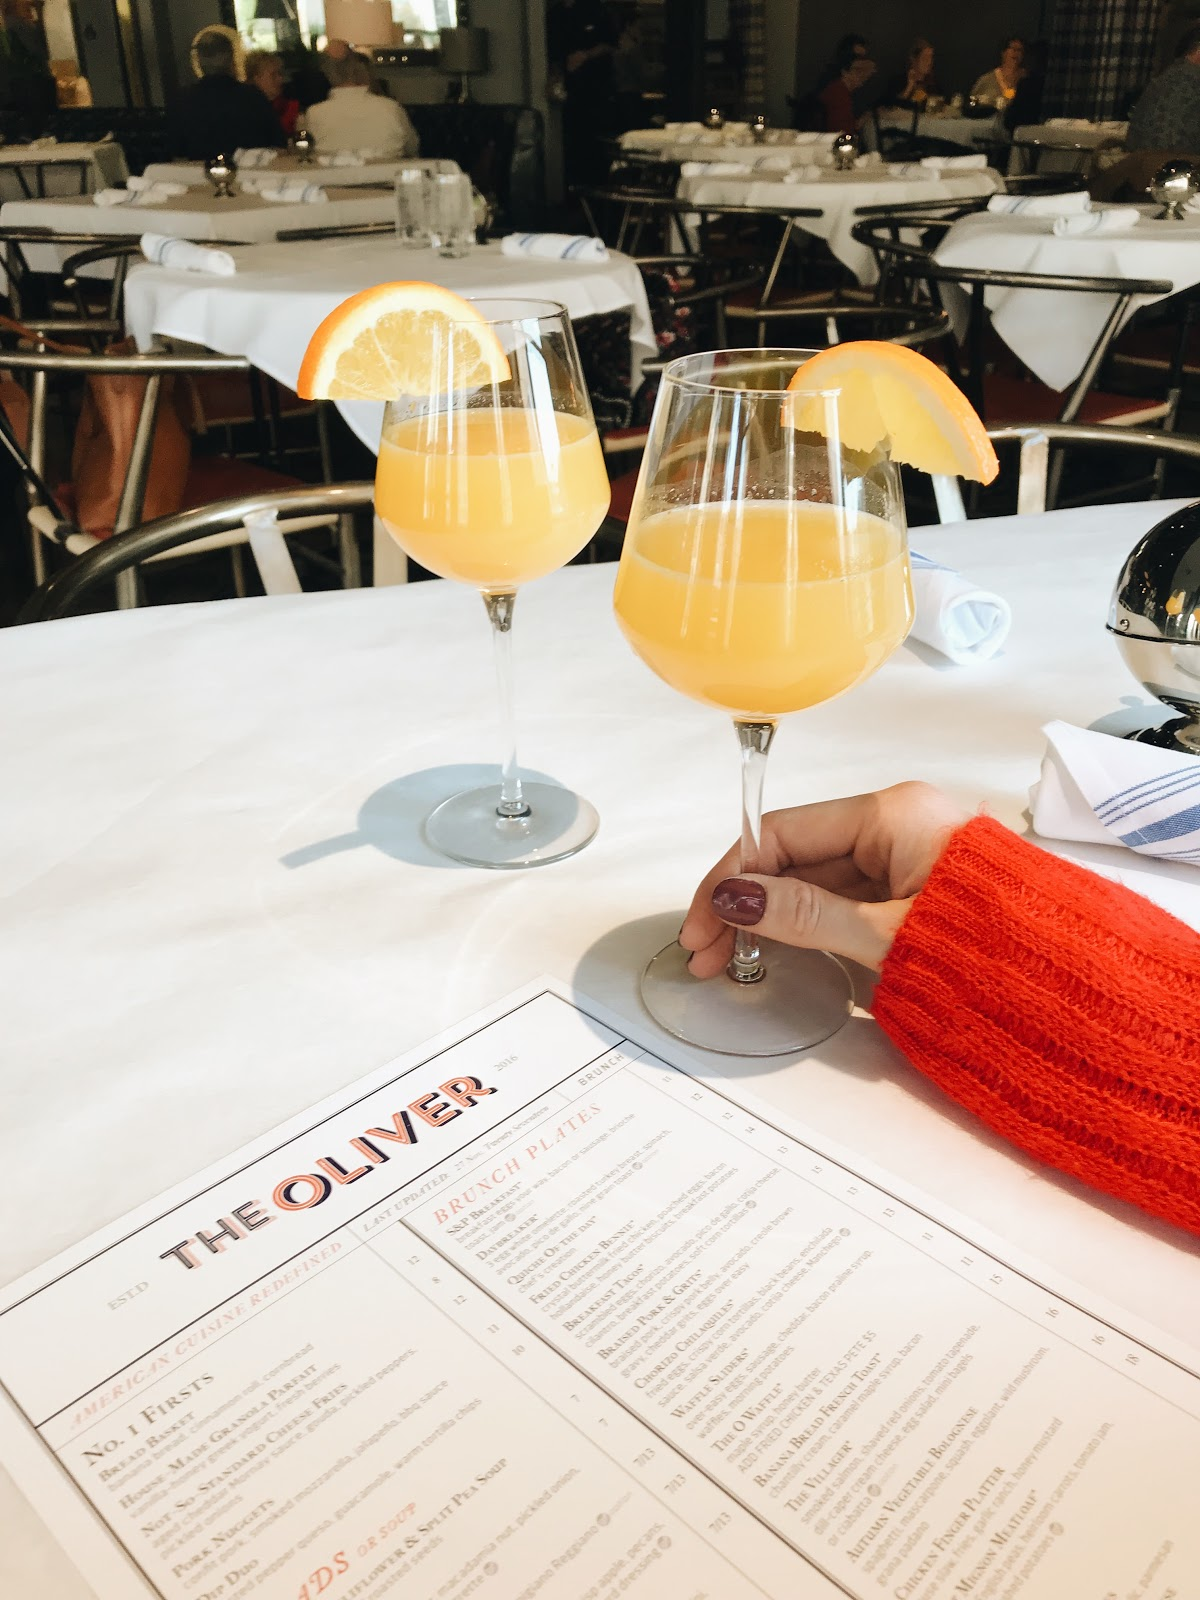 24 Hours in Kansas City | brunch at The Oliver